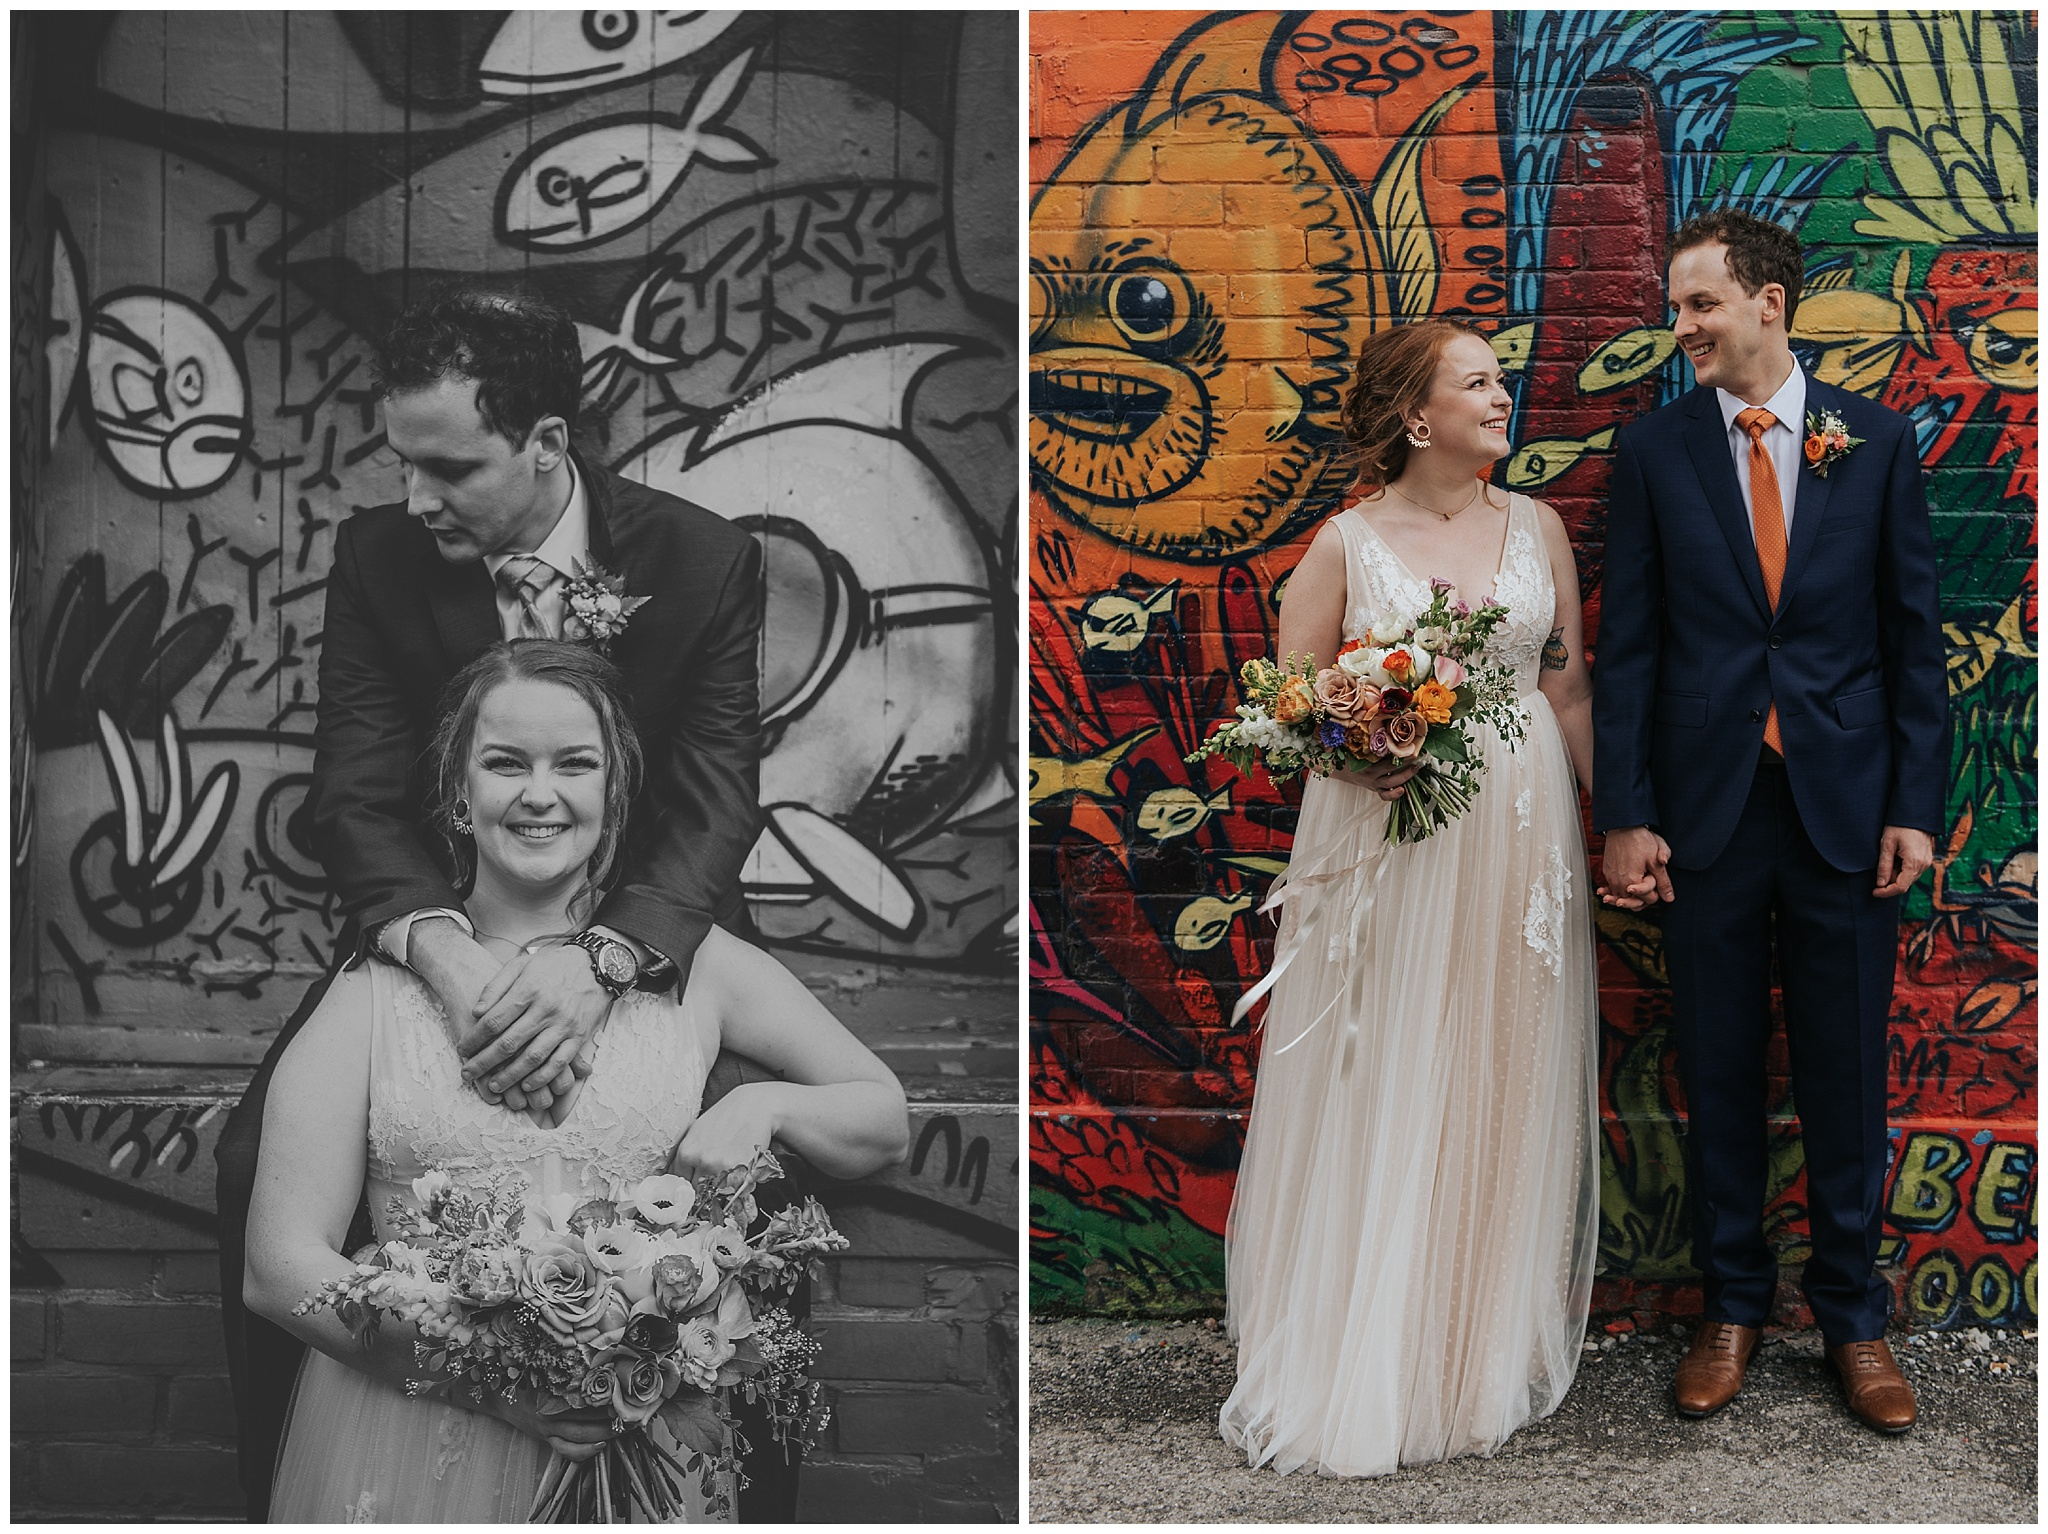 KingWestSecondFloorEventsGraffitiAlleyWedding_0036.jpg